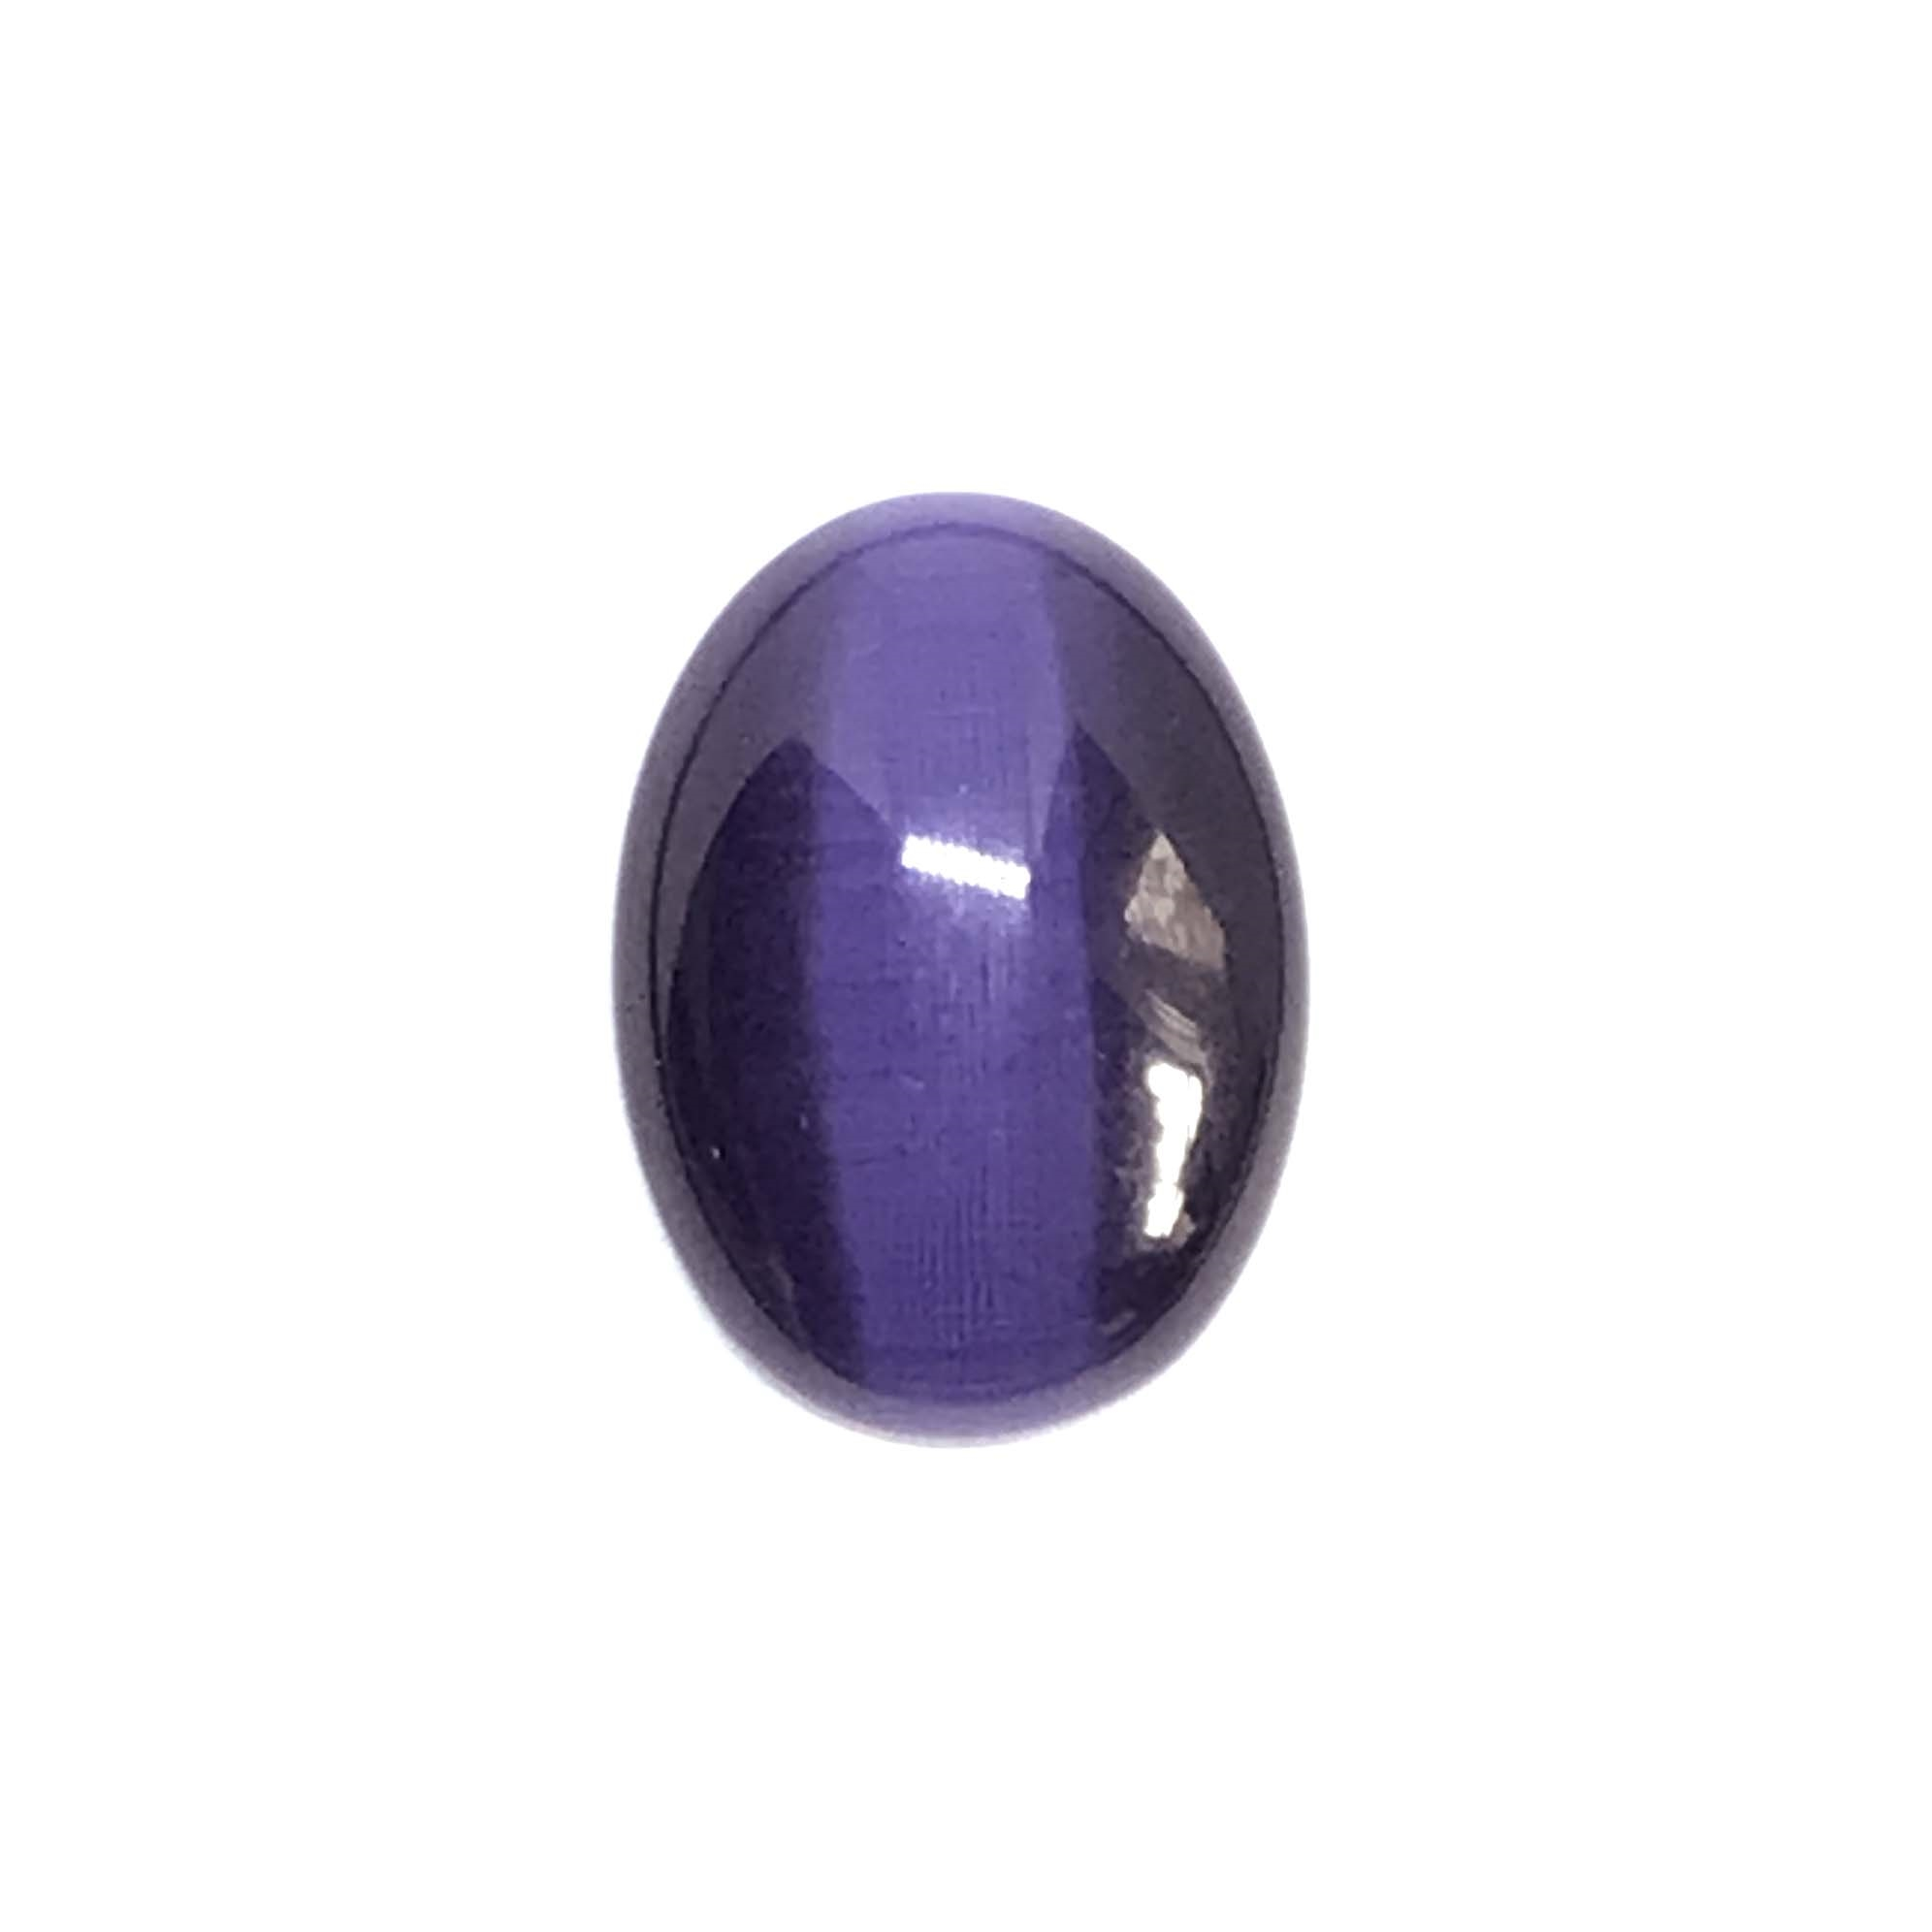 tanzanite cat's eye stone, focal stone, fiber optic, glass stone, glass, cat's eye, tanzanite stone, cabochon, transparent, oval, glossy shine, oval stone, US made, B'sue Boutiques, jewelry stone, 25x18mm, purple stone, purple glass stone, 0799